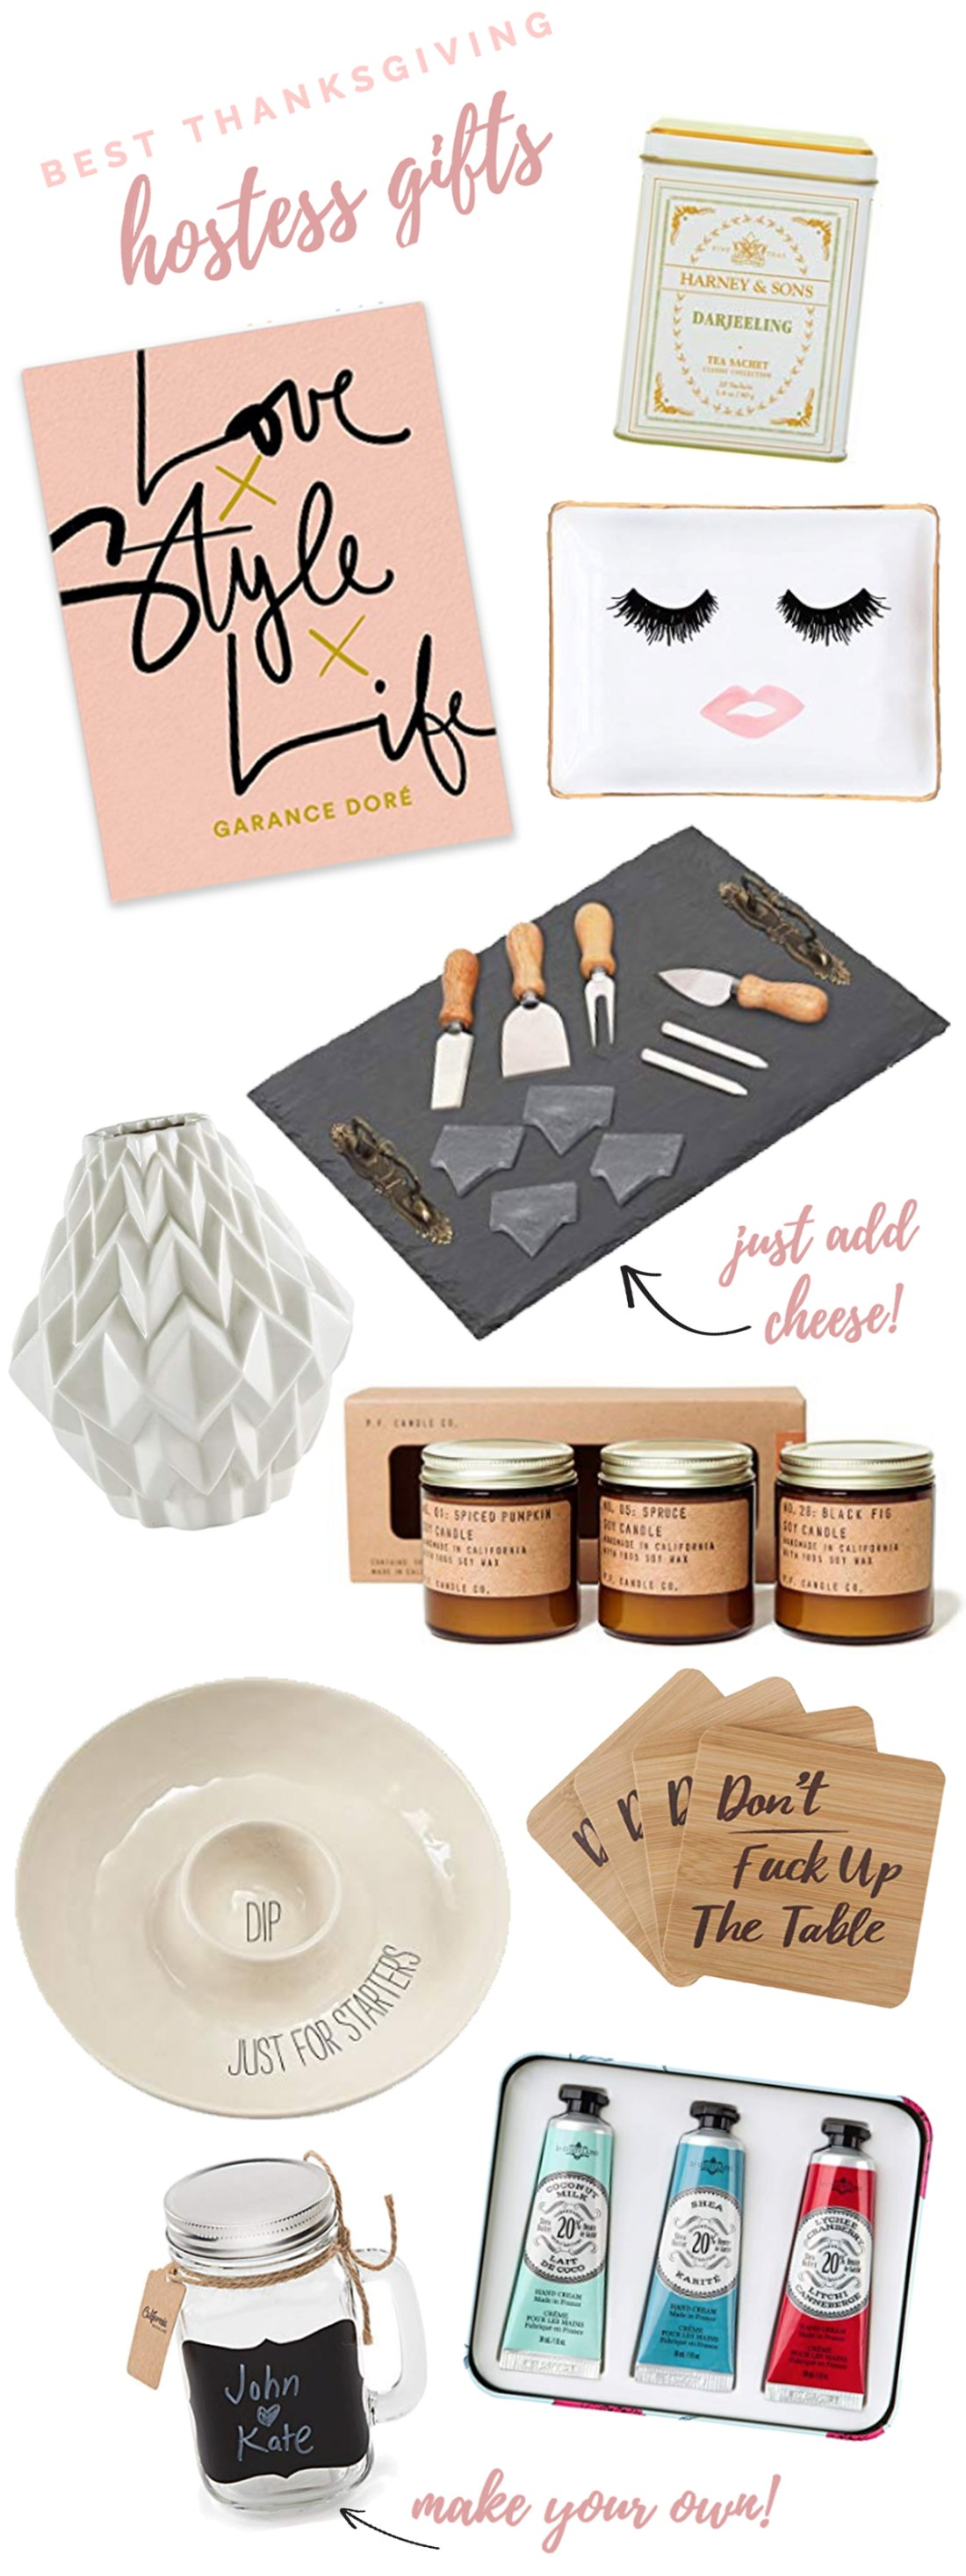 Best Thanksgiving Hostess Gifts from Amazon   A Good Hue